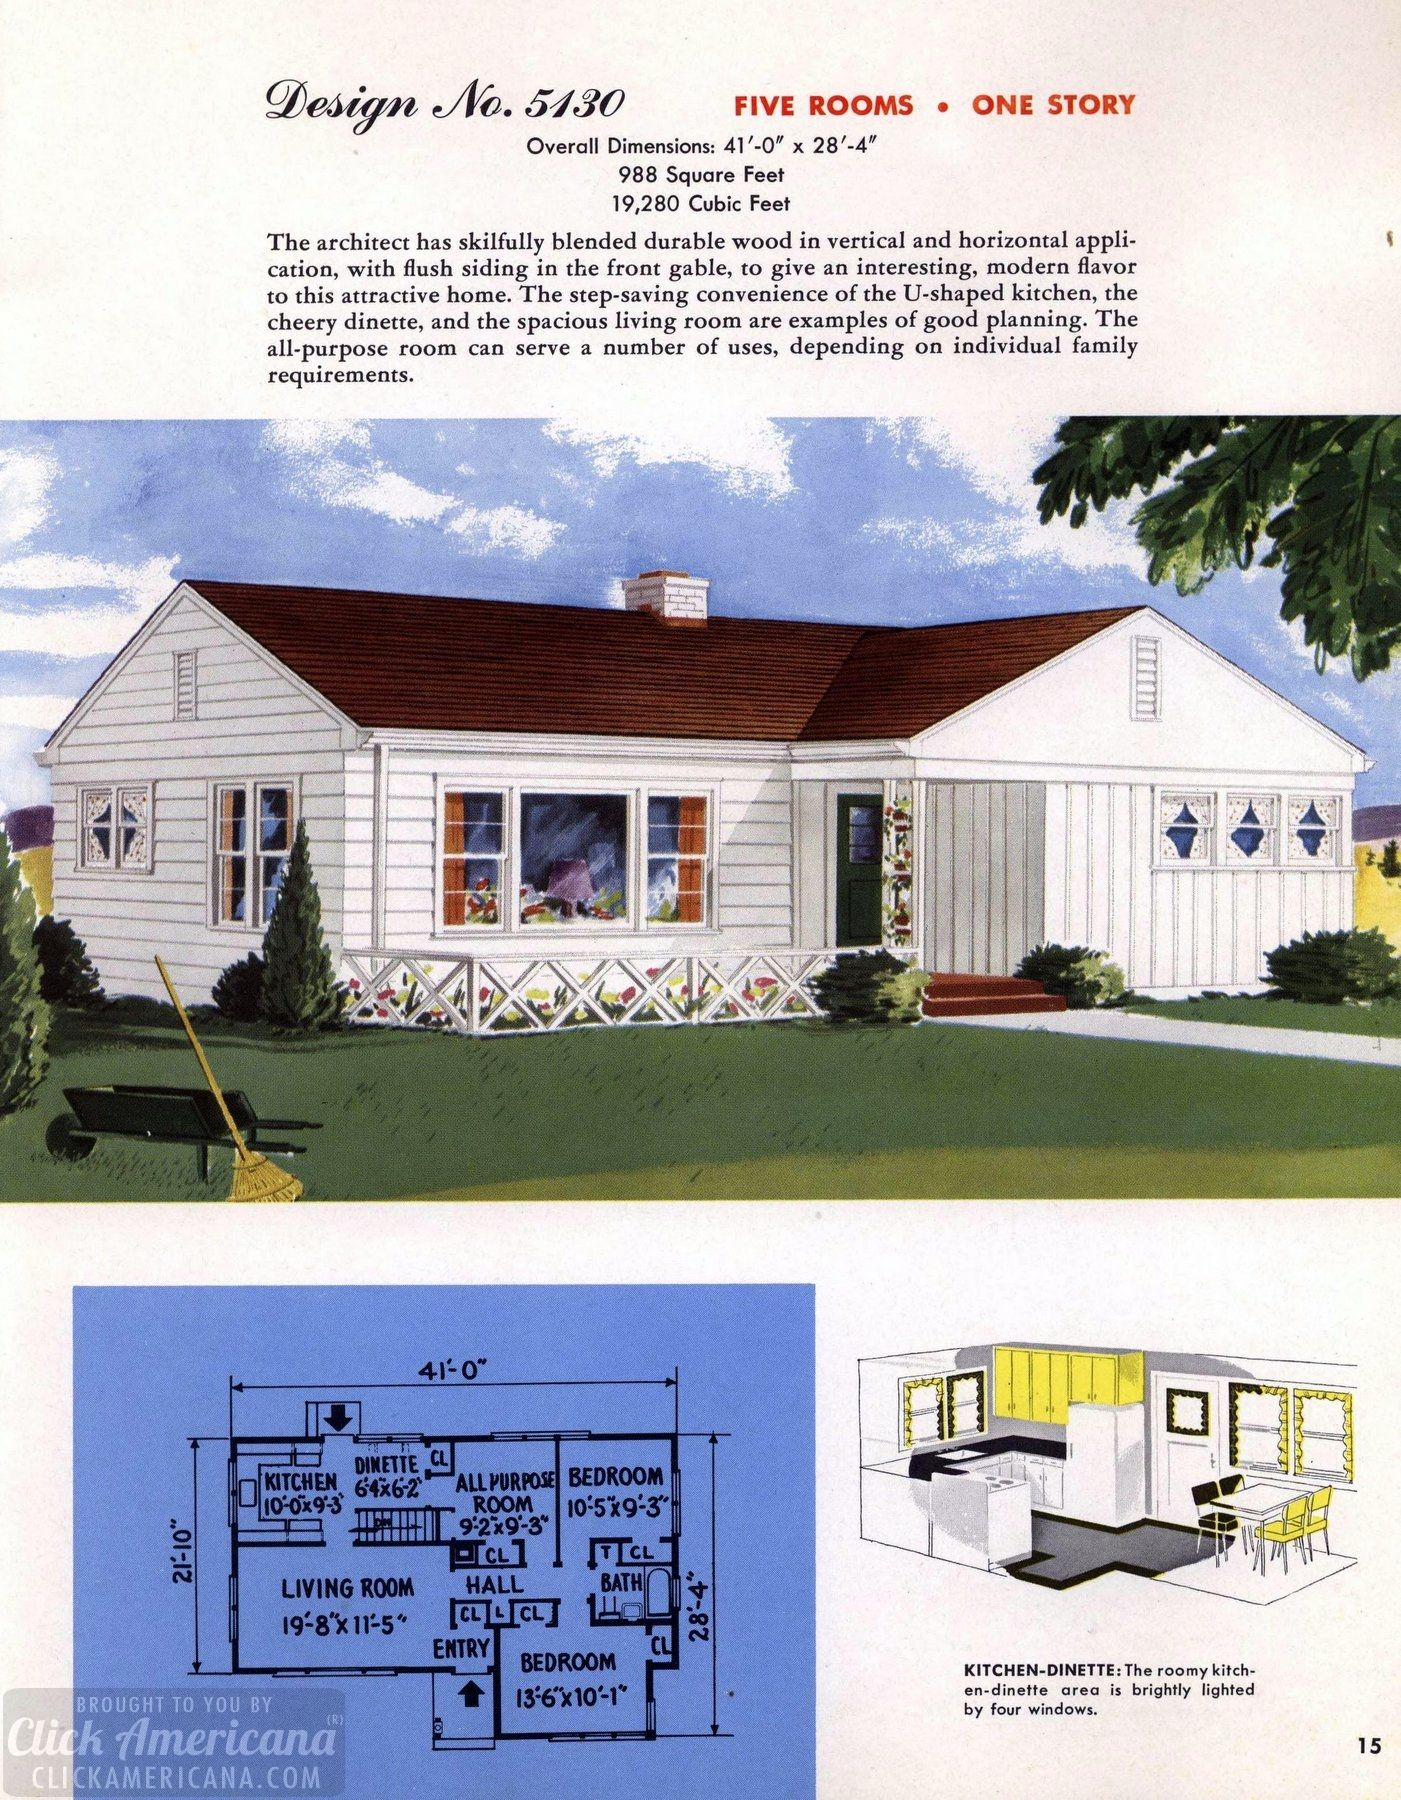 130 Vintage 50s House Plans Used To Build Millions Of Mid Century Homes We Still Live In Today House Plans Mid Century House Home Design Floor Plans